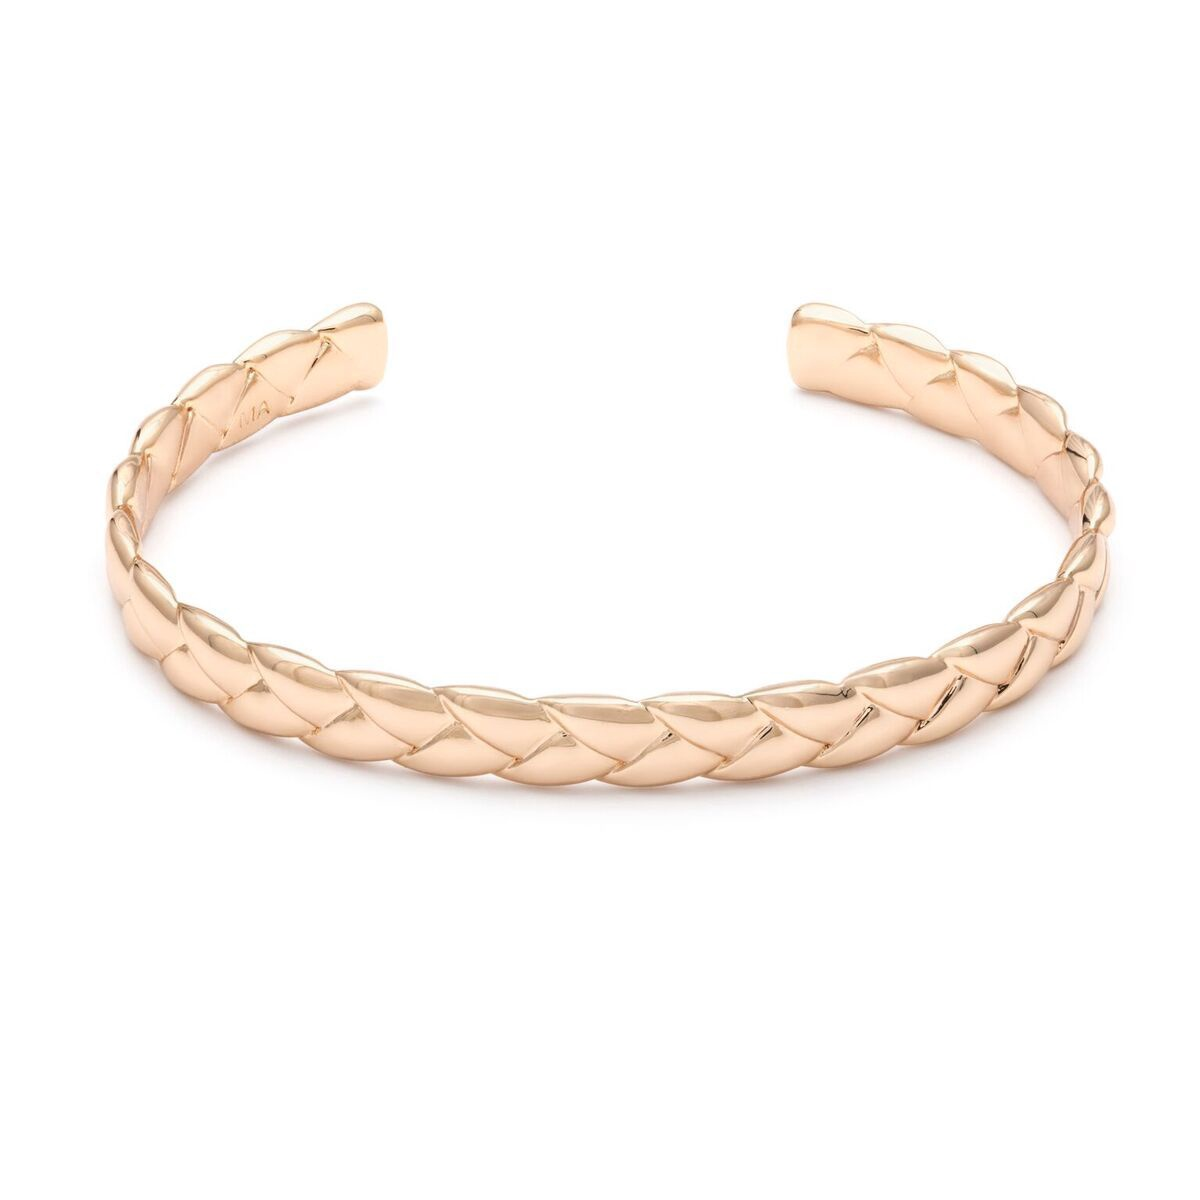 MELANIE AULD - WOVEN CUFF IN GOLD